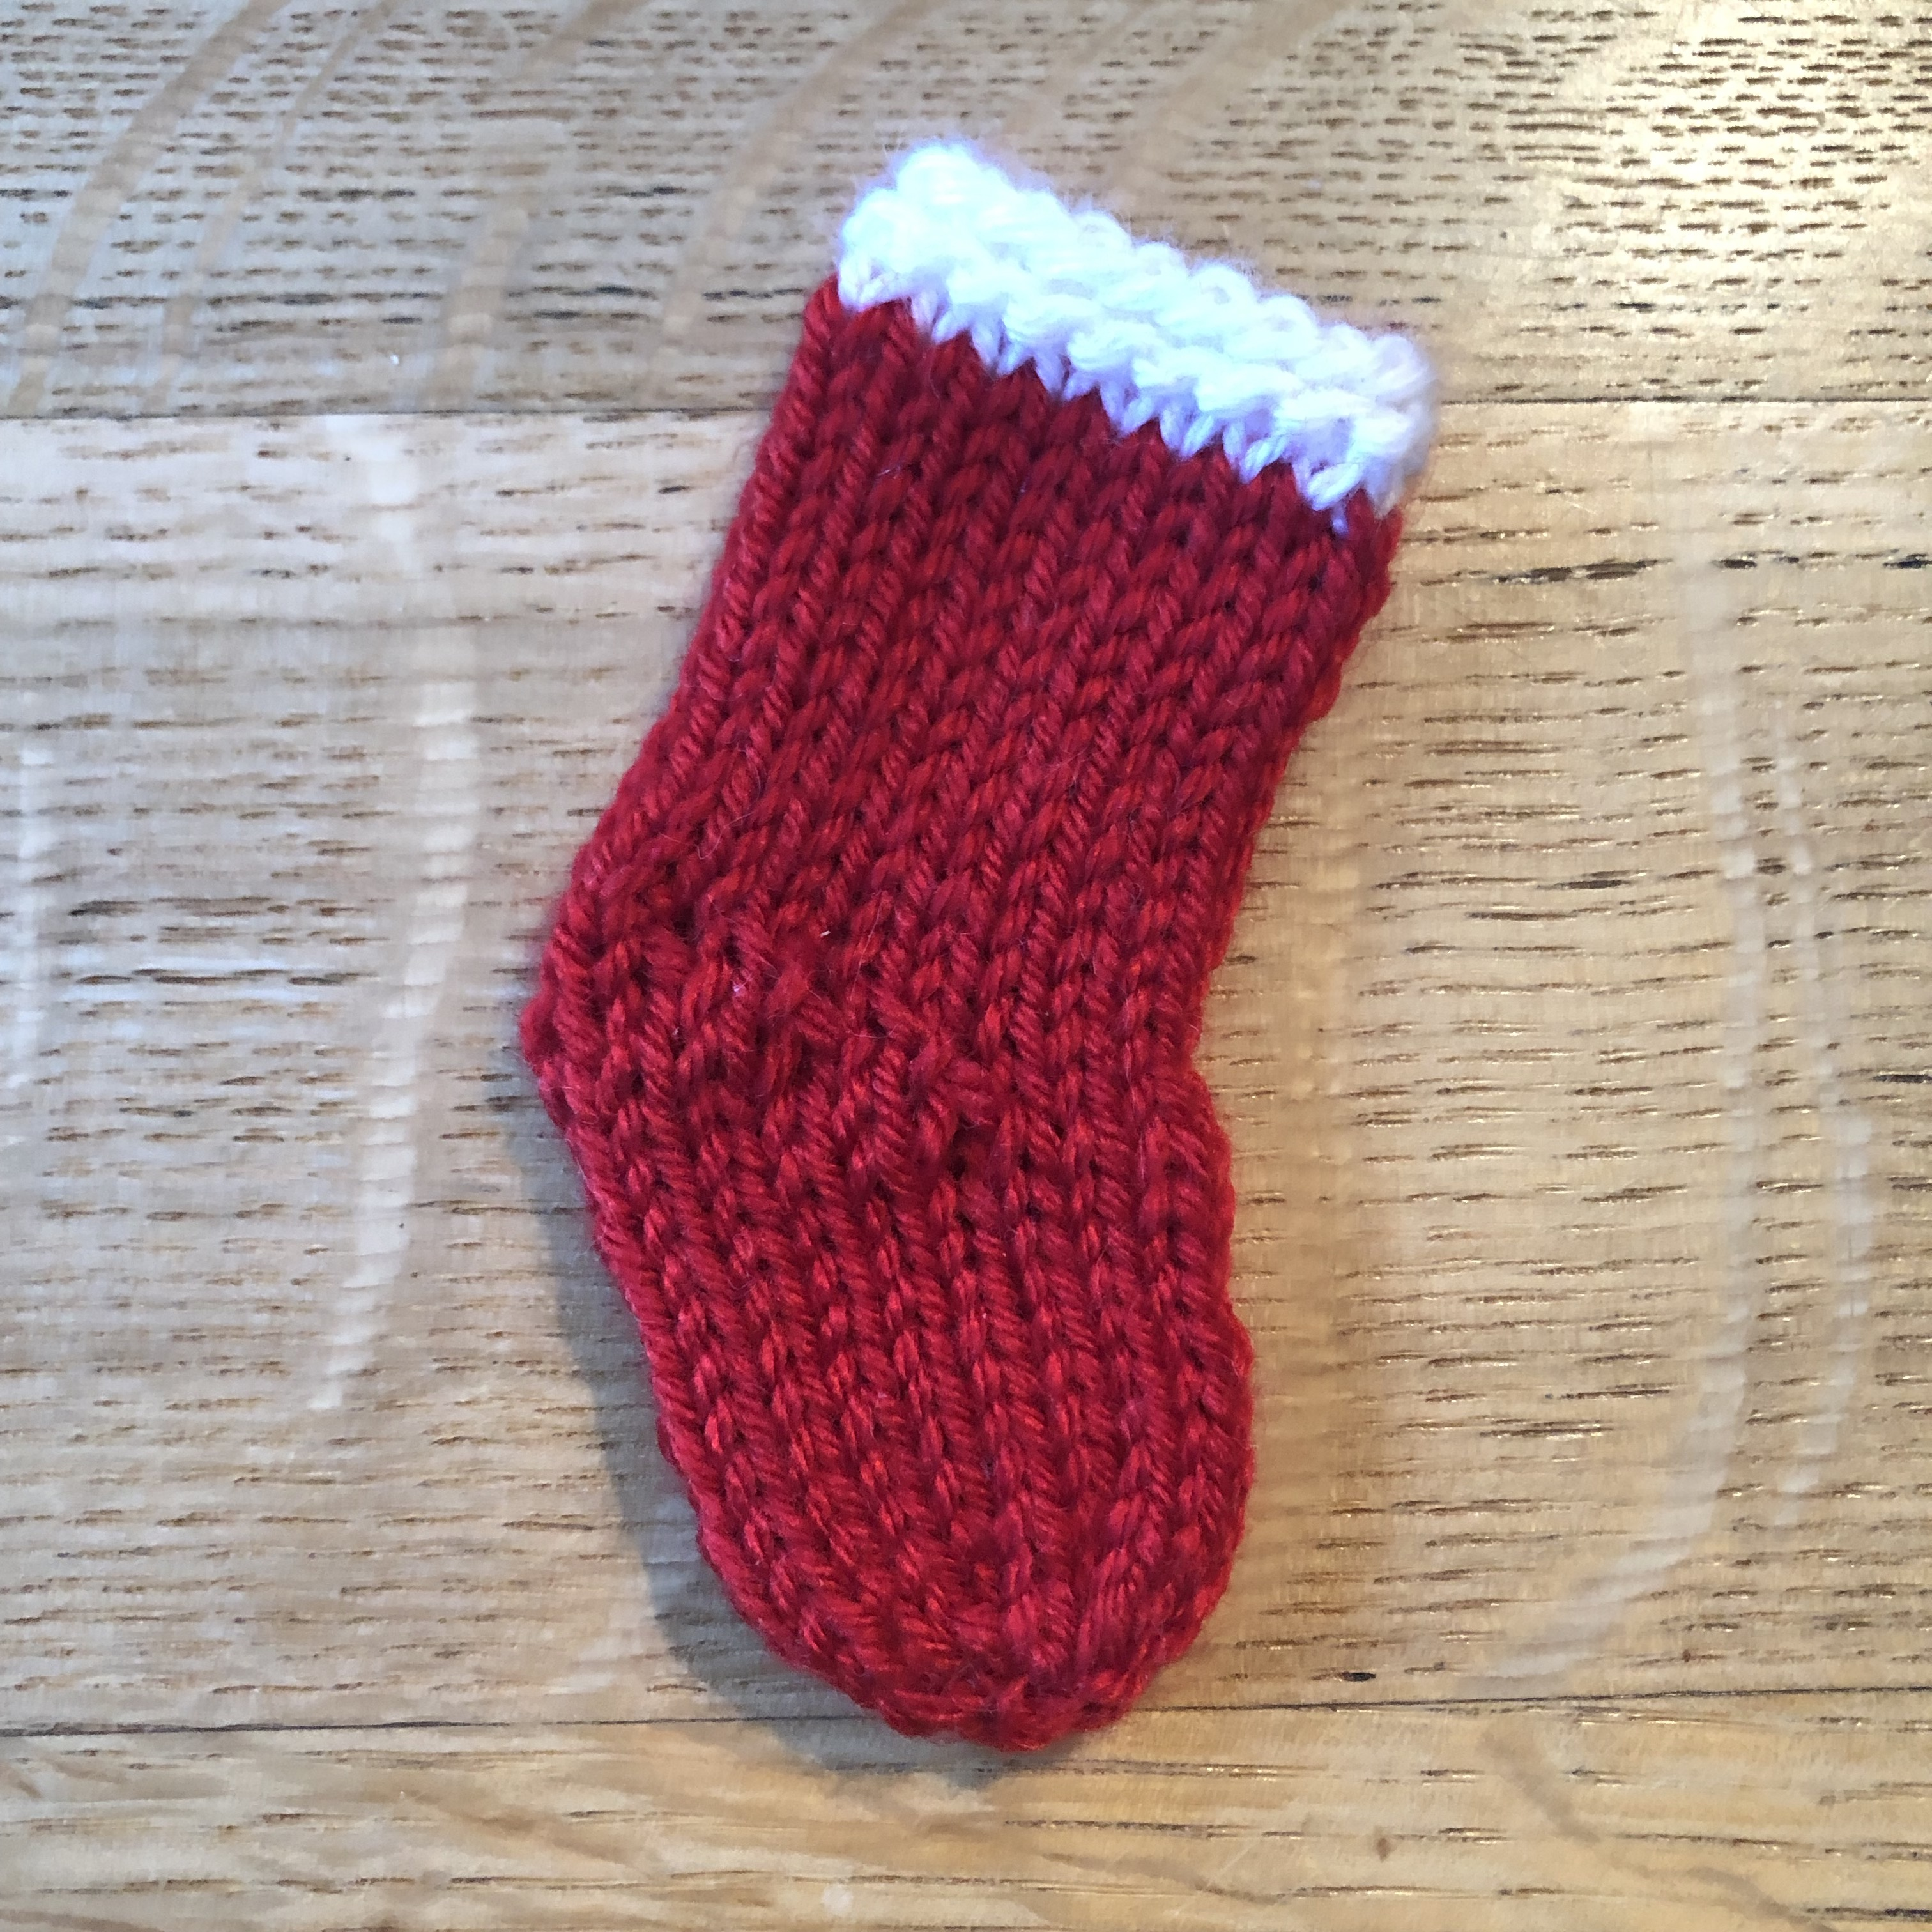 How to Knit a Little Christmas Stocking